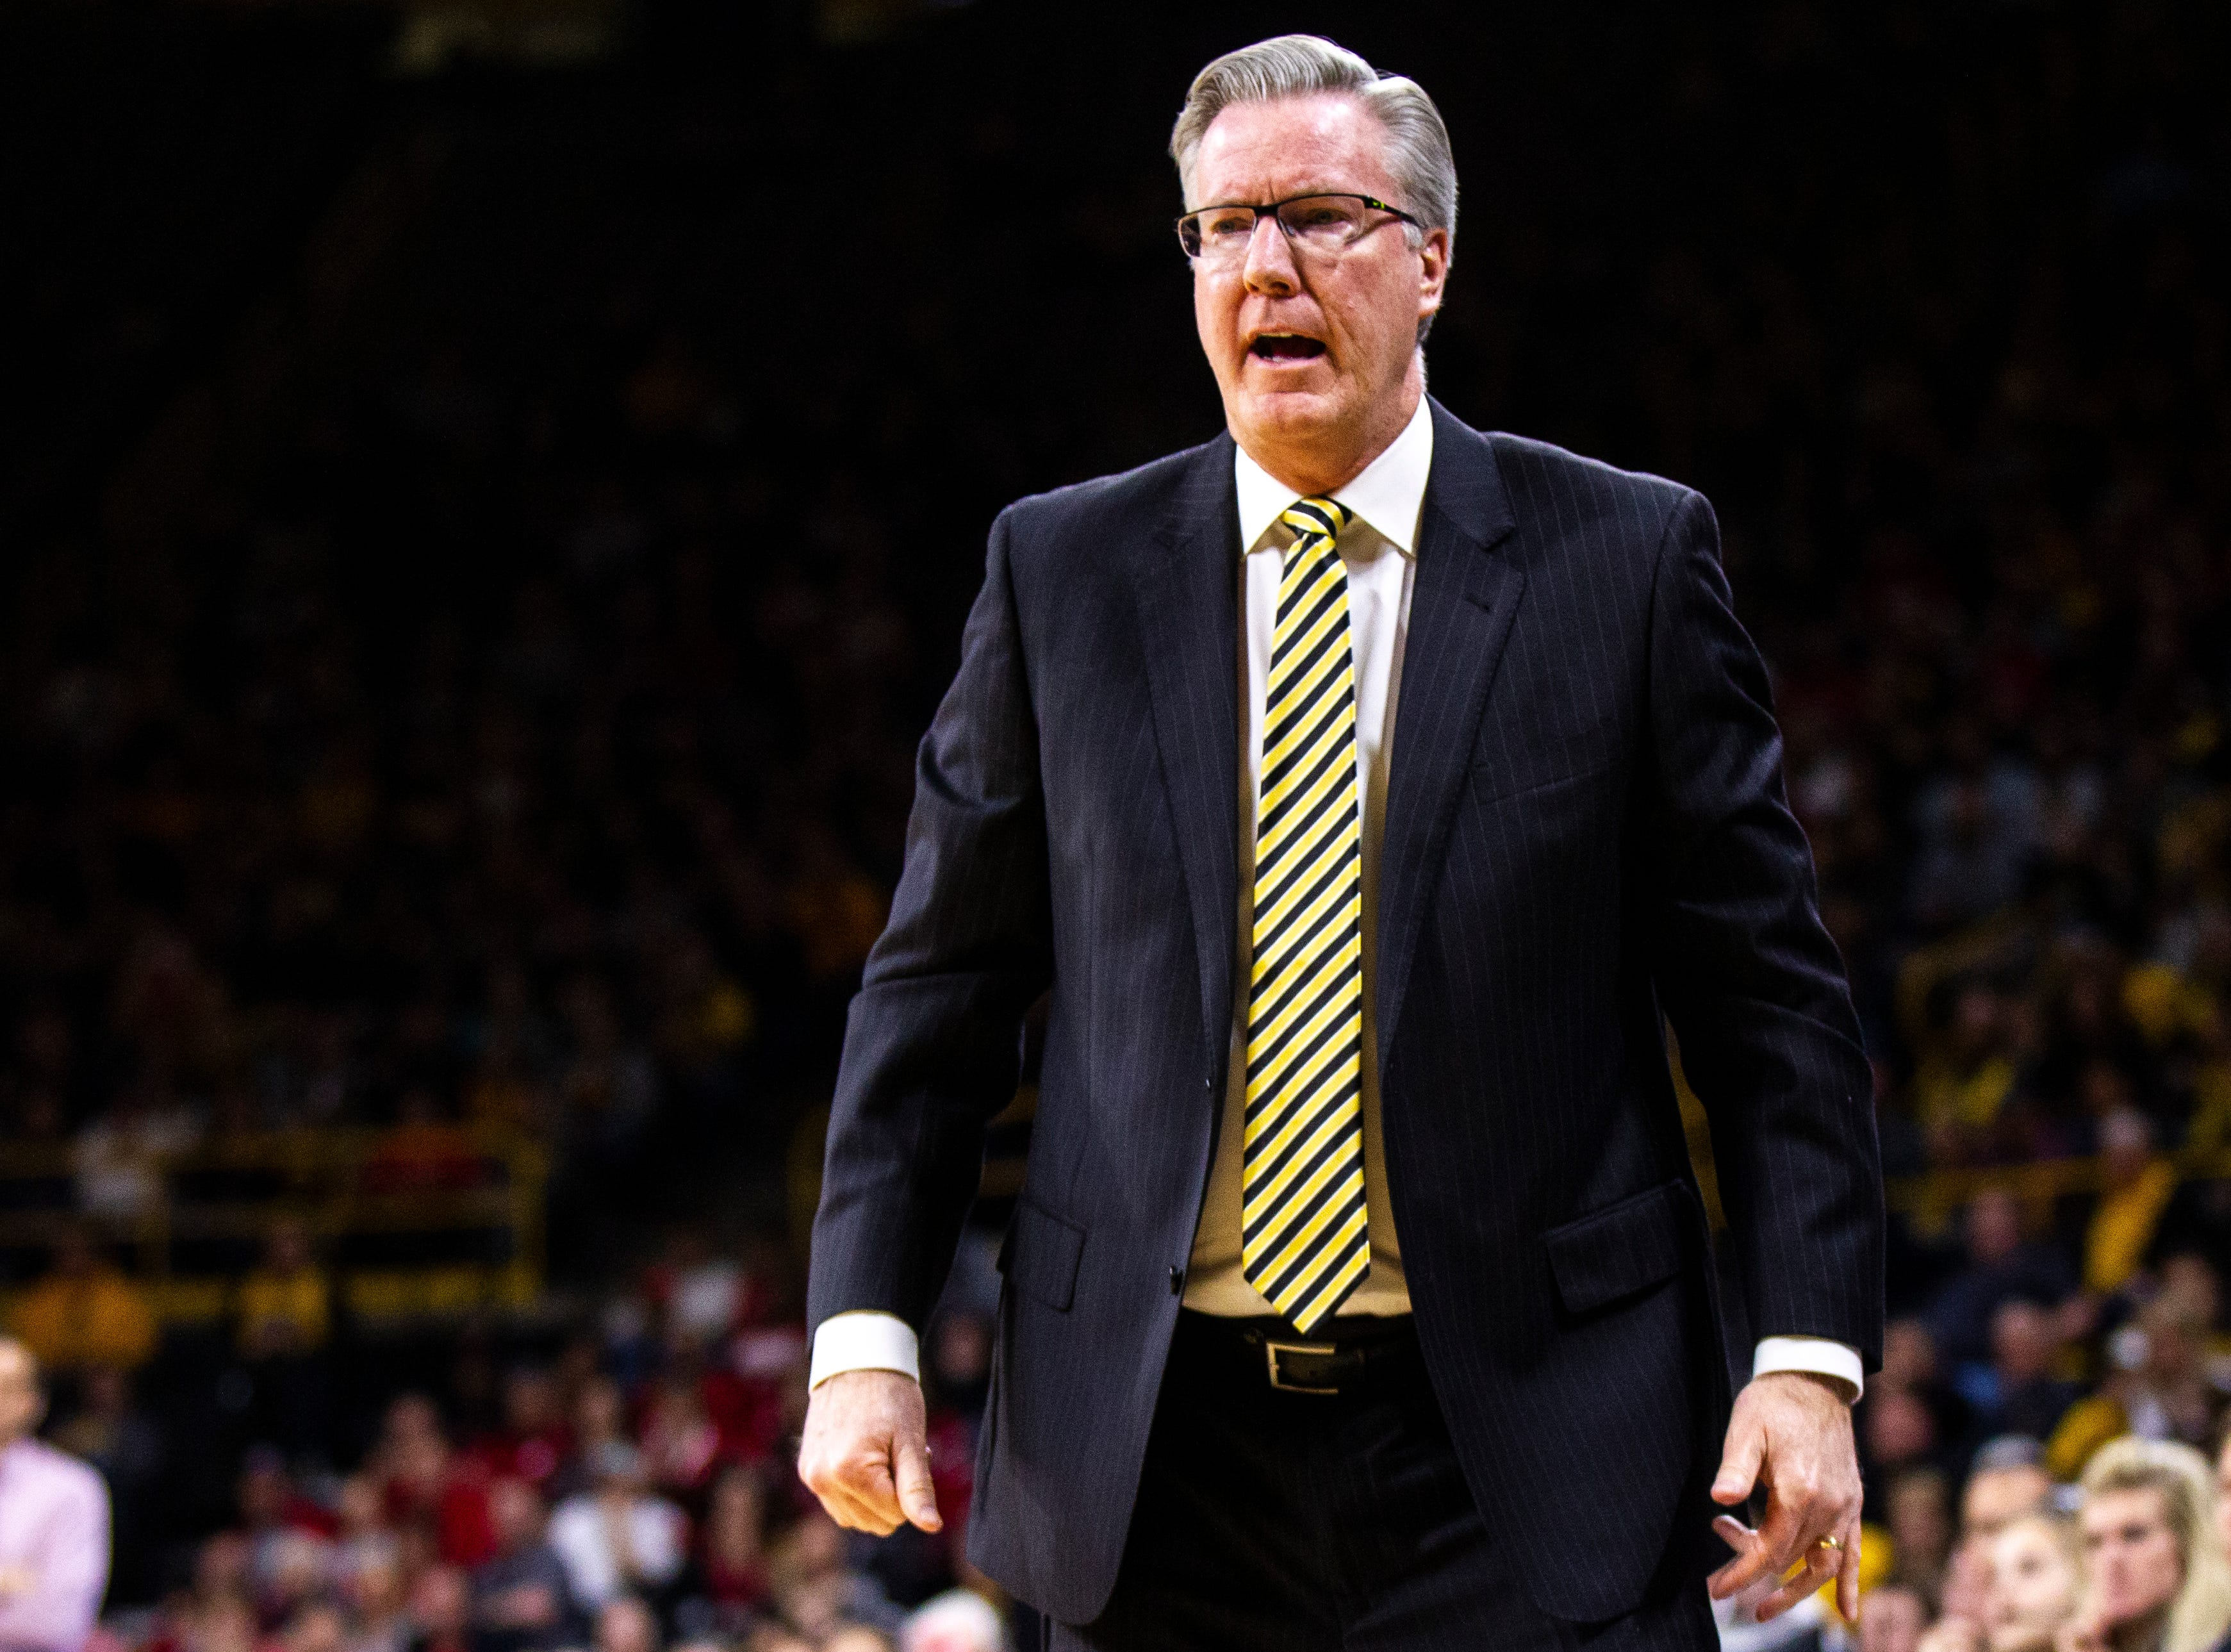 Iowa men's basketball head coach Fran McCaffery calls out to players during a NCAA Big Ten Conference men's basketball game on Sunday, Jan. 6, 2019, at the Carver-Hawkeye Arena in Iowa City, Iowa.